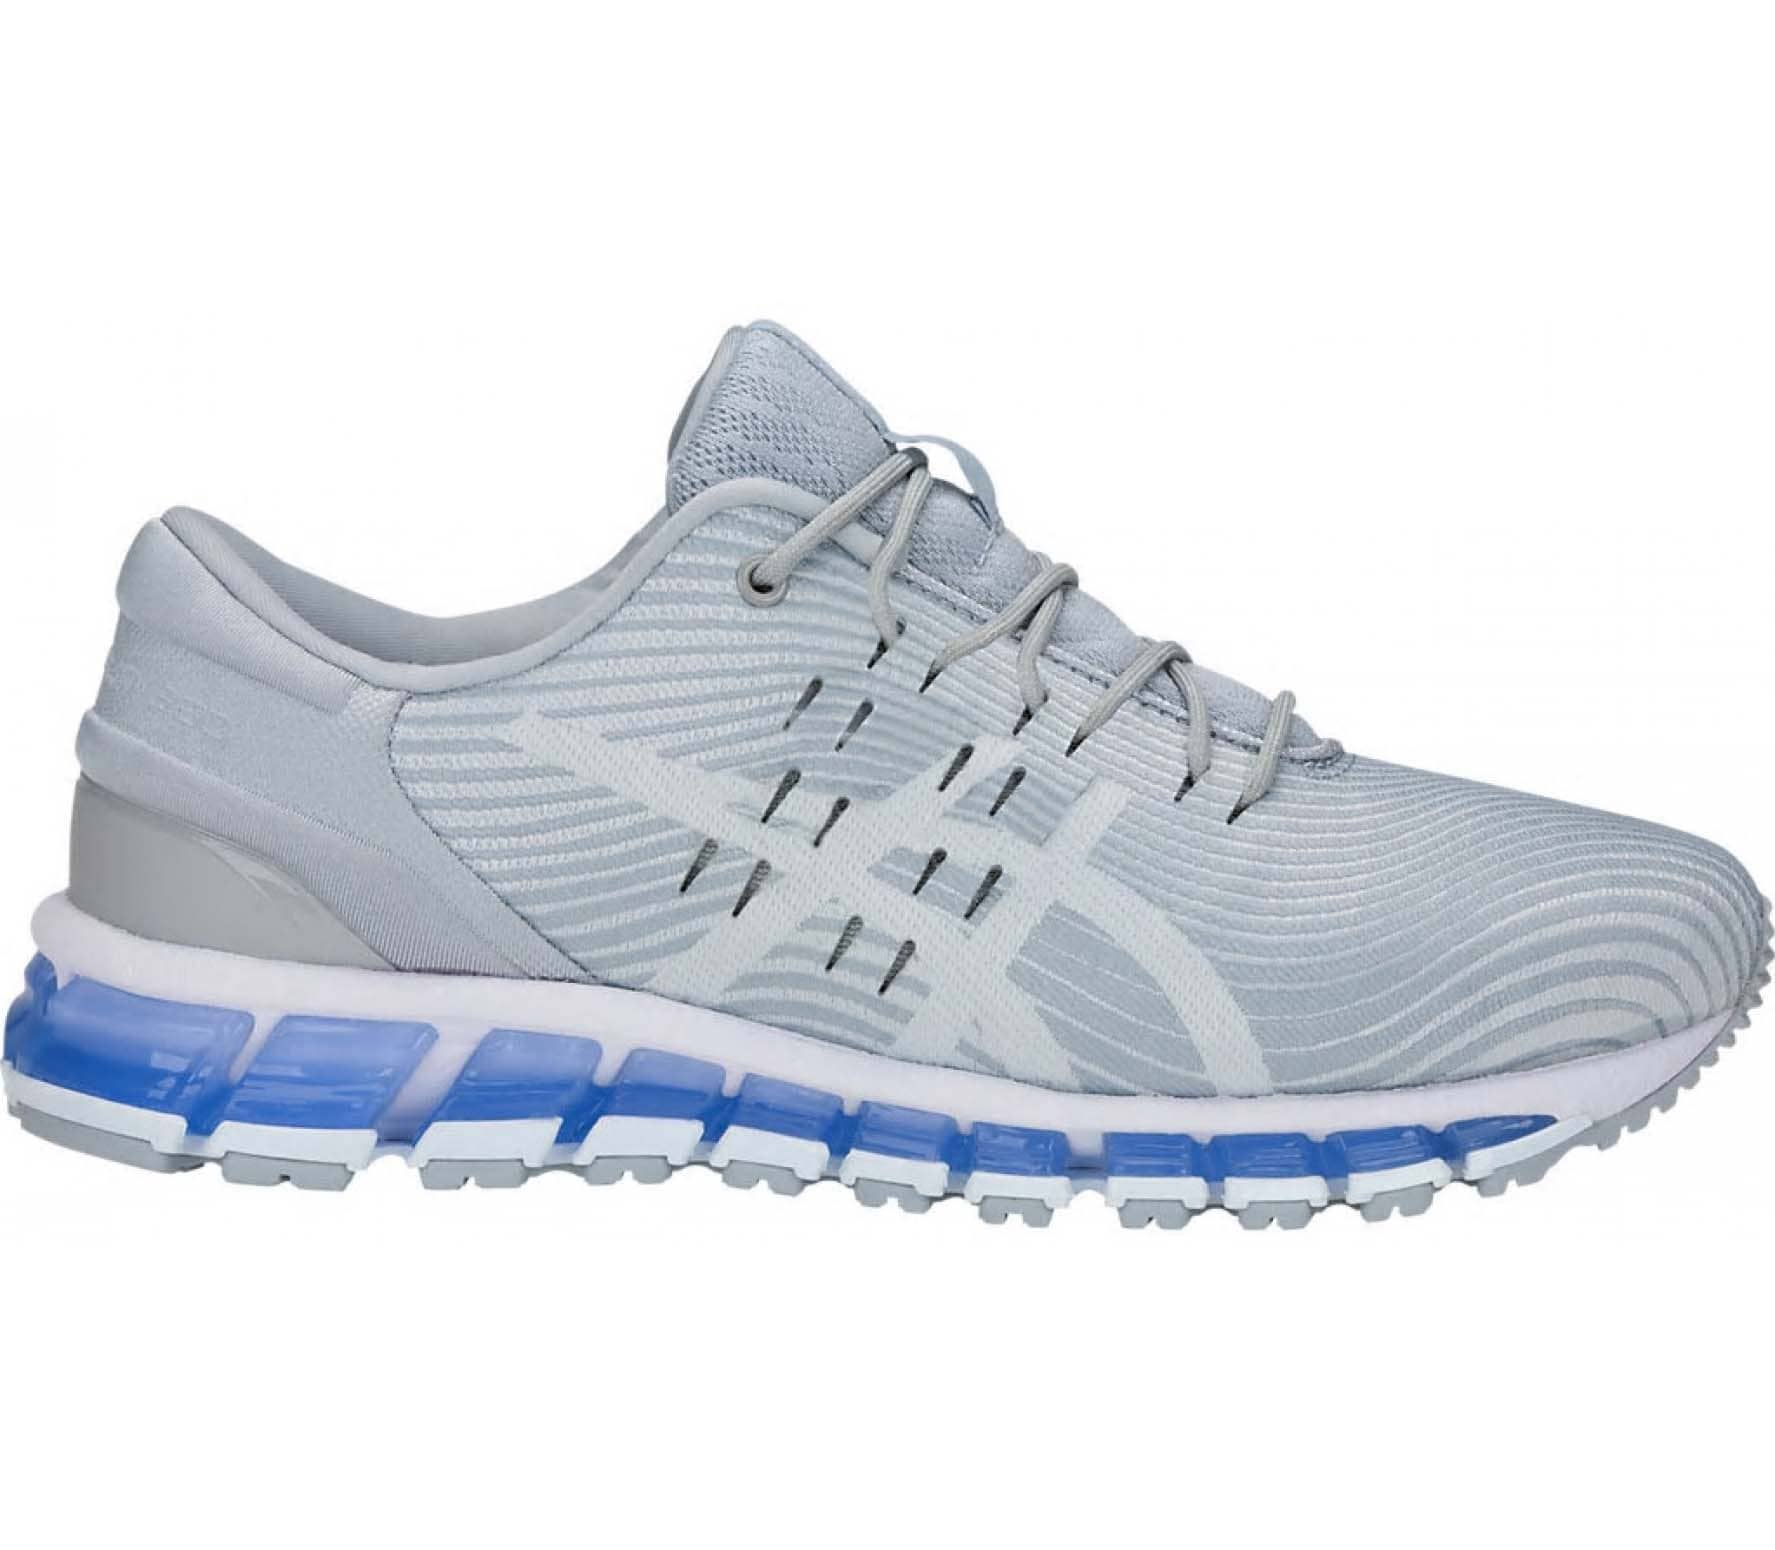 0cfd8e5af8bc ASICS - Gel-Quantum 360 4 women s running shoes (grey) - buy it at ...